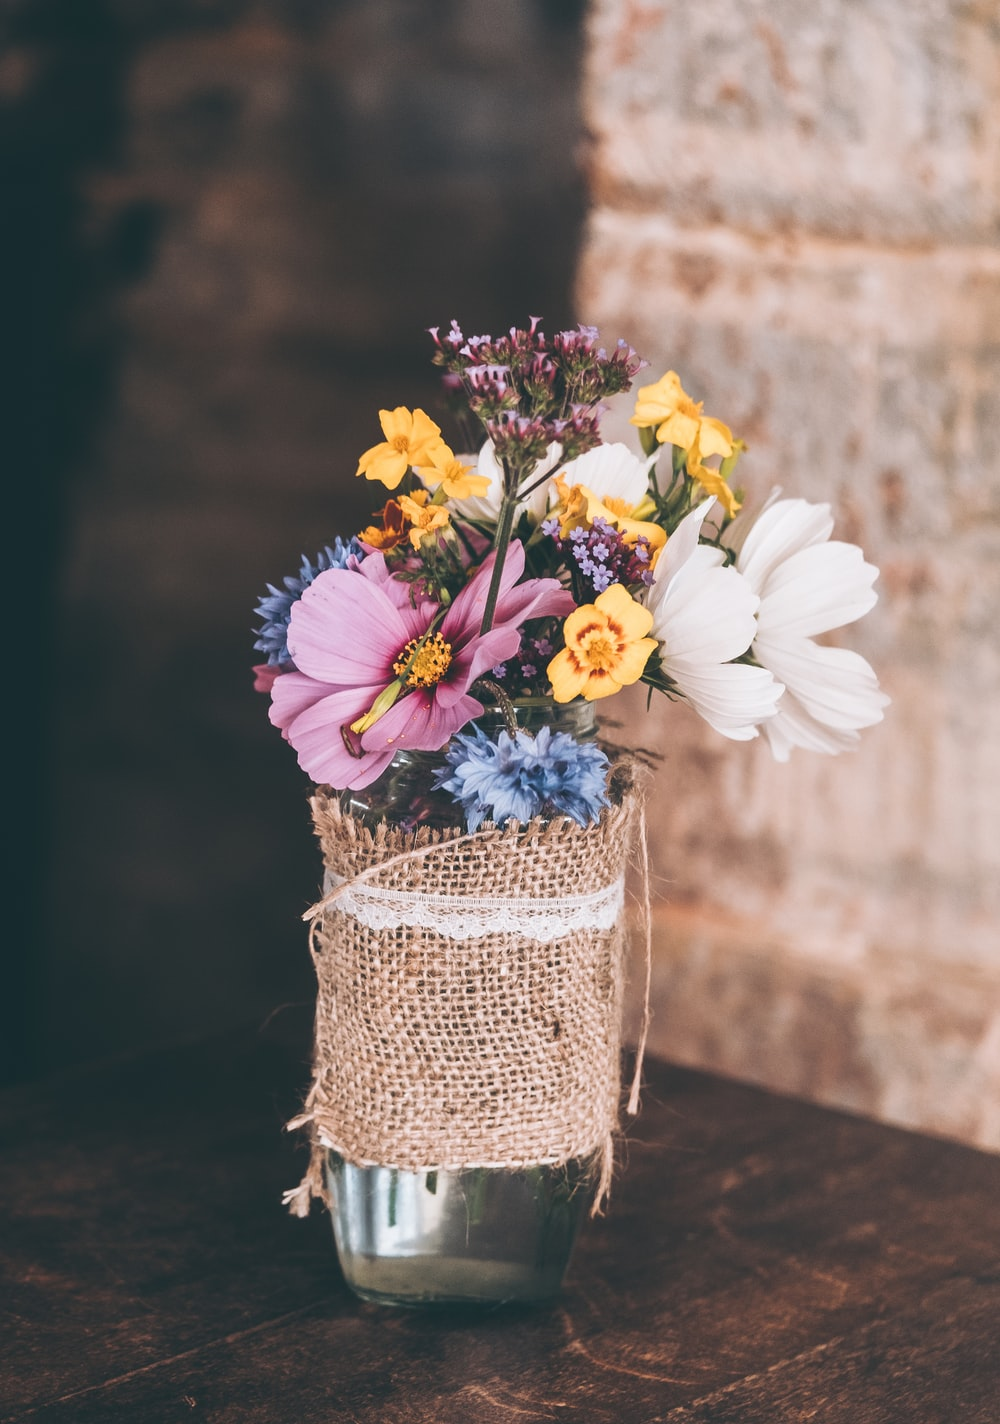 Wedding 8 best free wedding flower bouquet and flower a bouquet of various flowers in a glass vase on a wooden surface izmirmasajfo